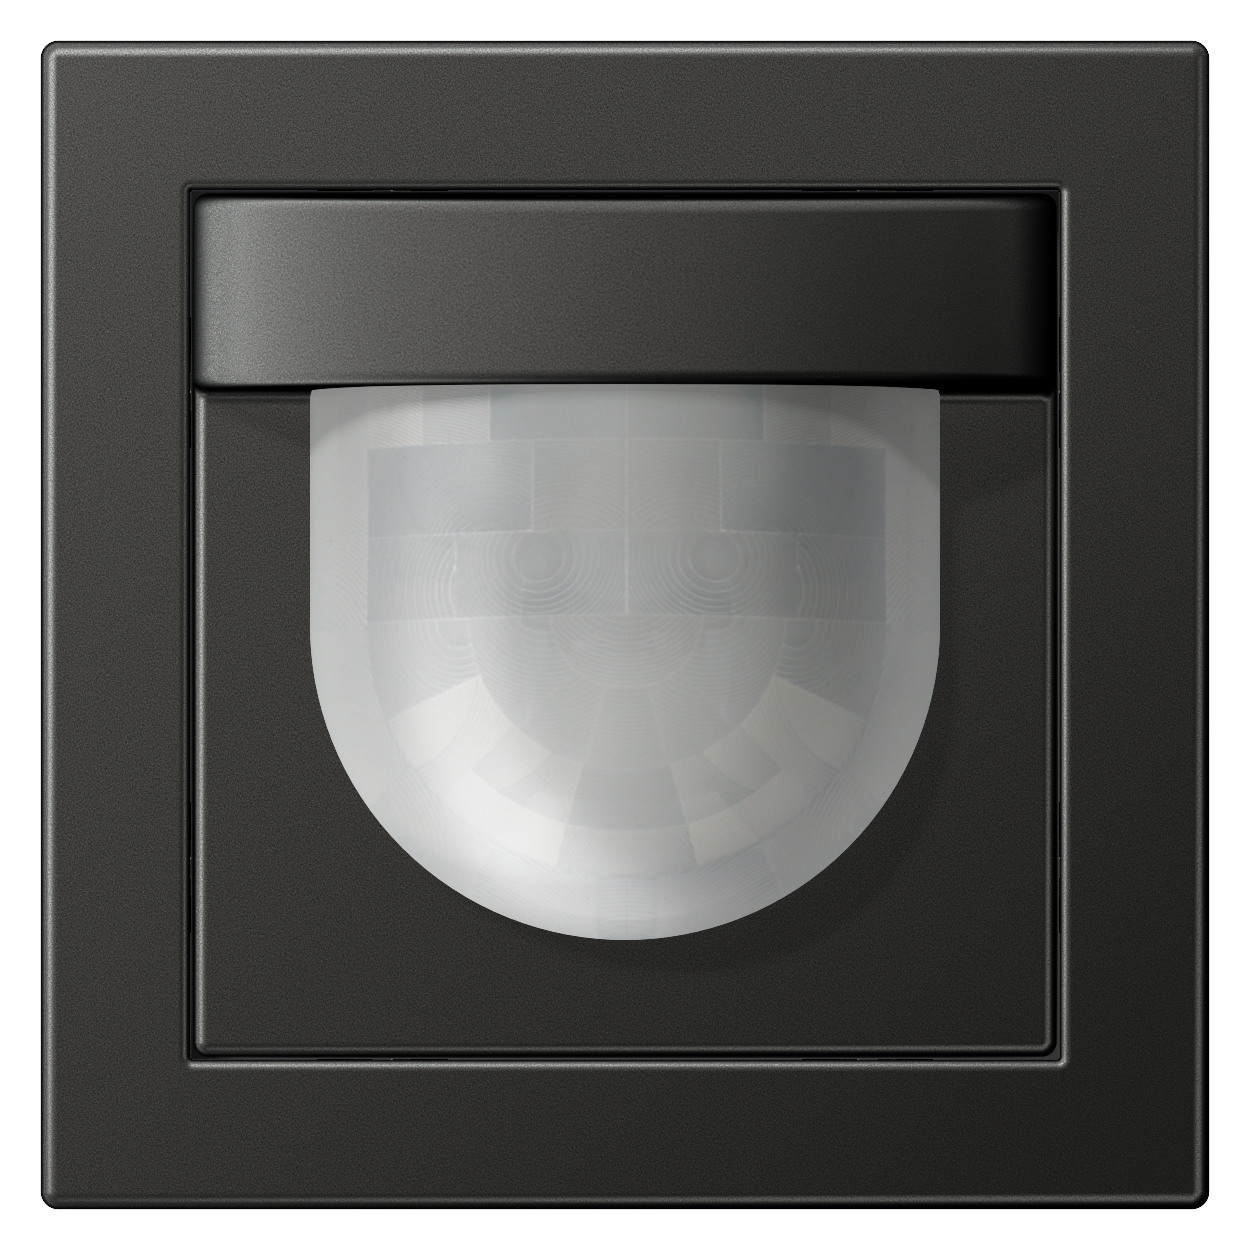 JUNG_LS_Design_anthracite_automatic-switch_1280